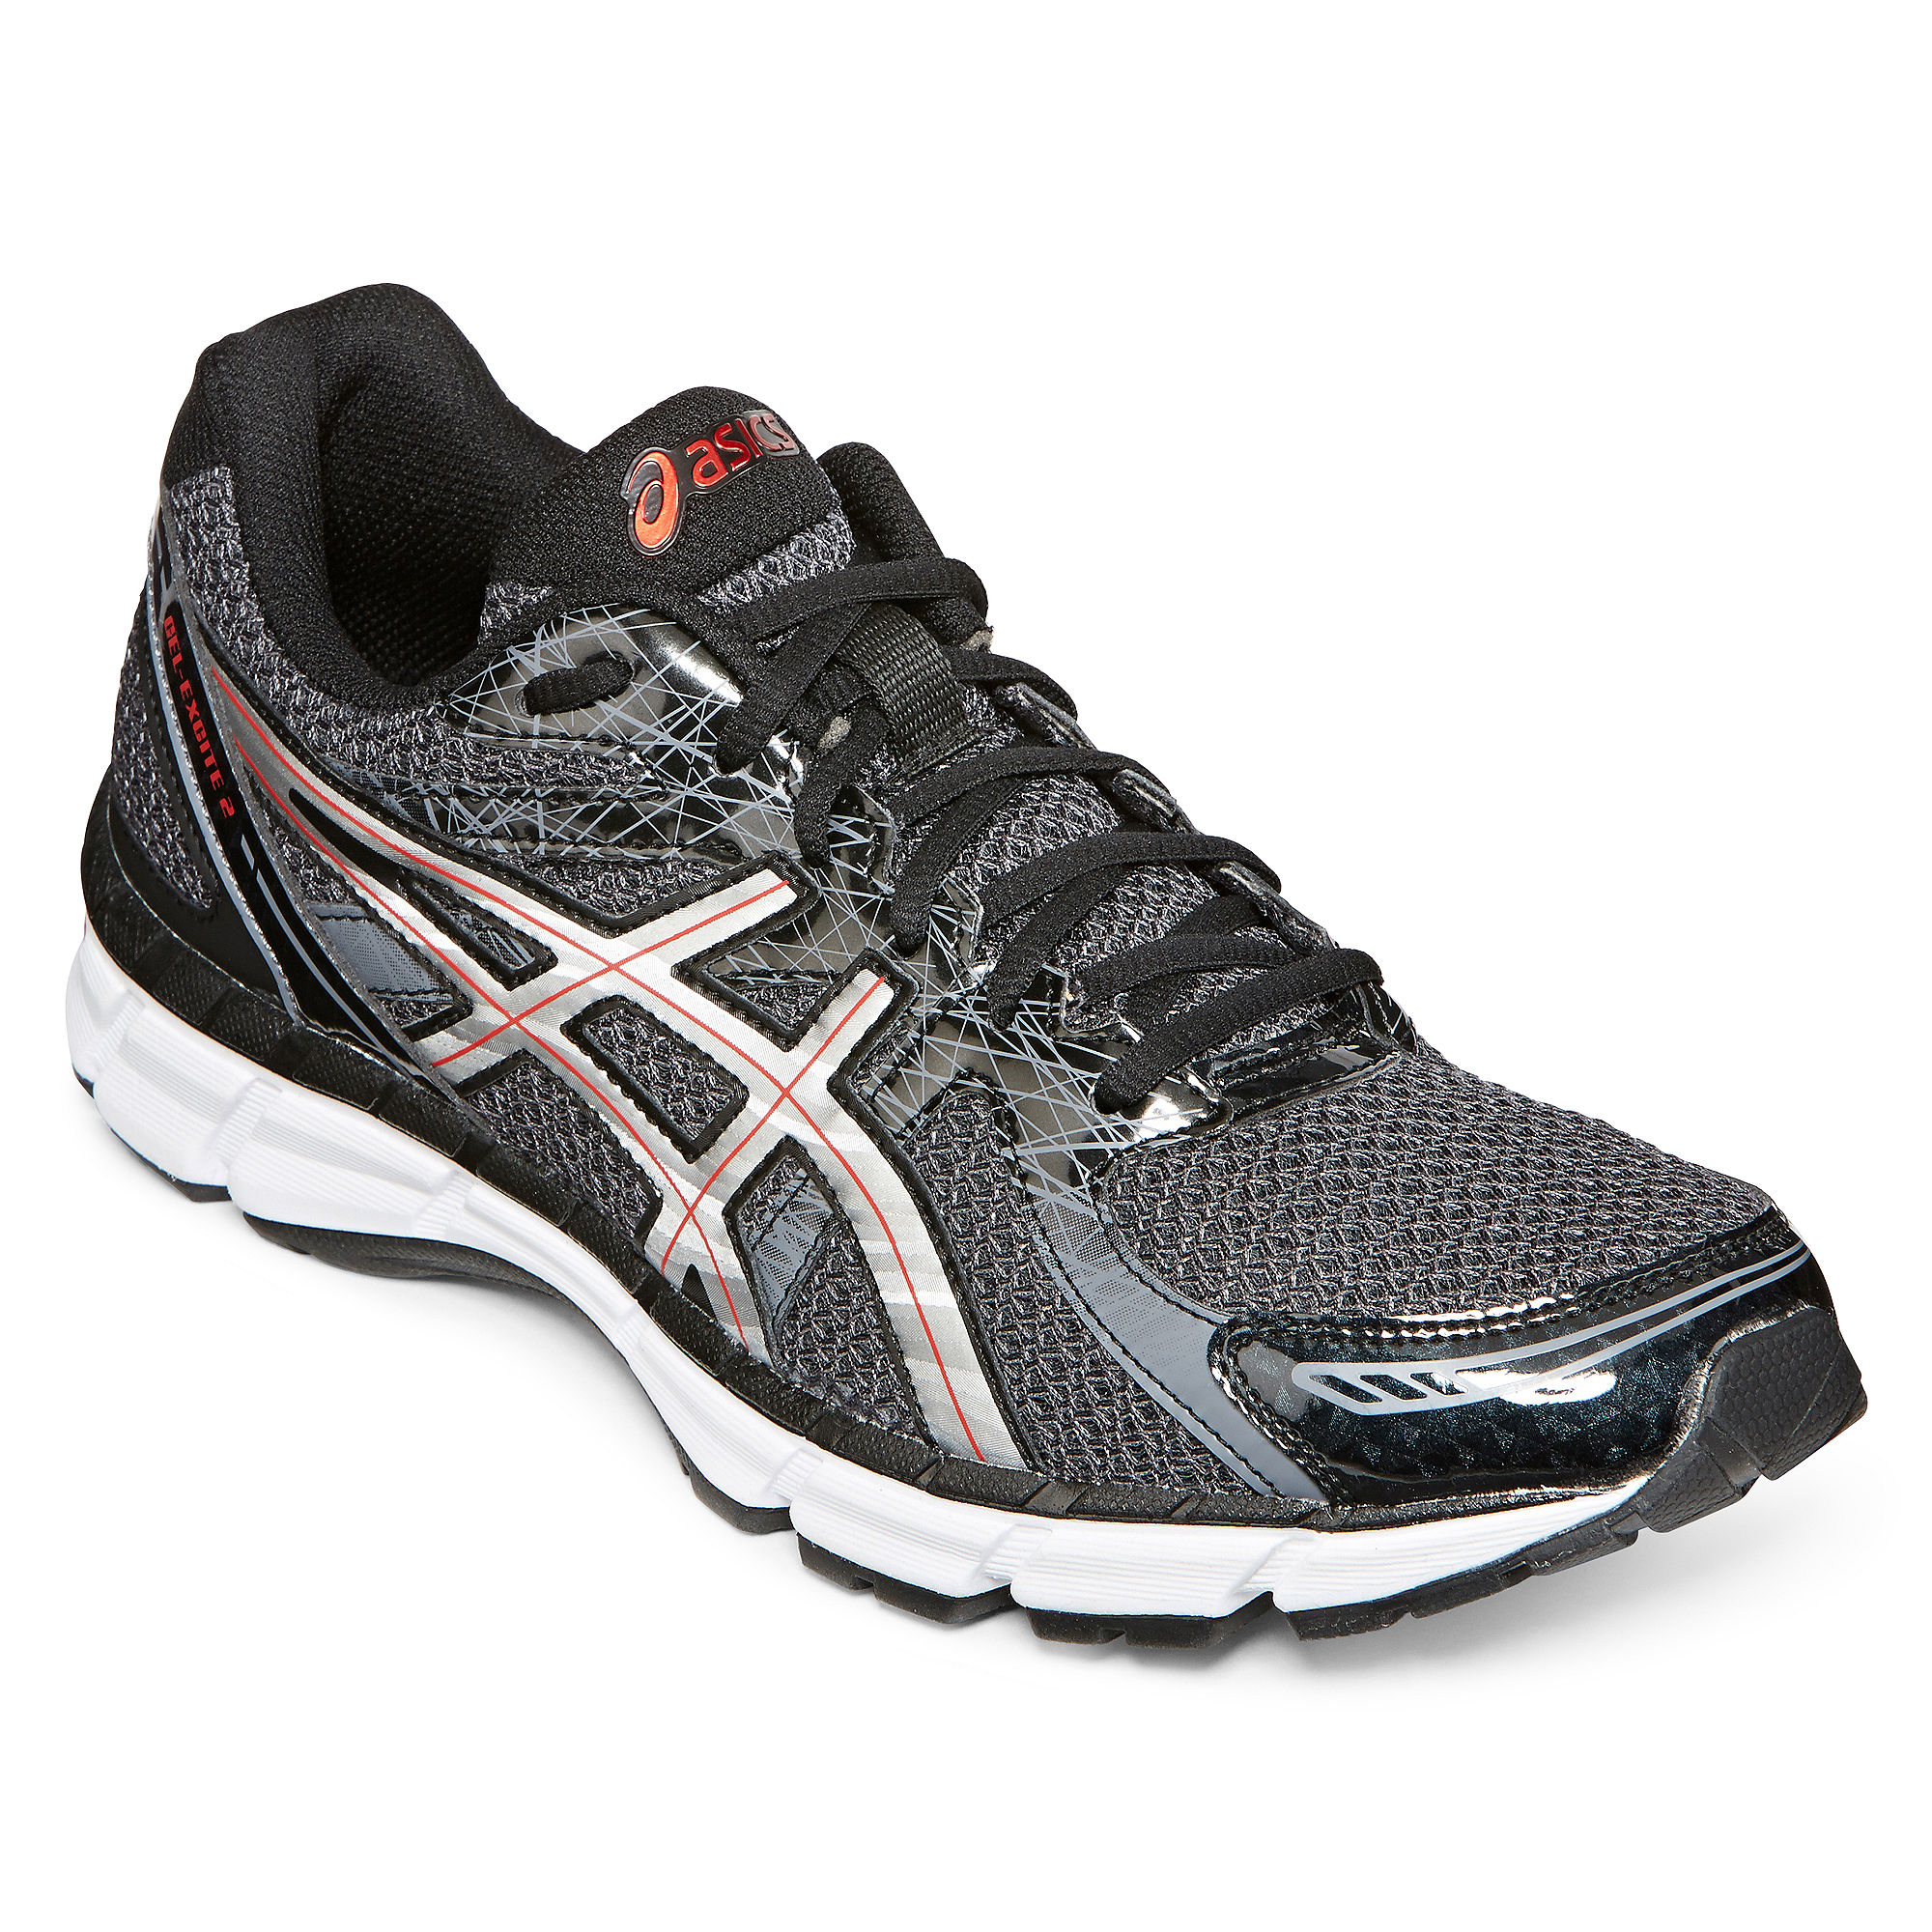 ASICS GEL-Excite 2 Mens Athletic Shoes